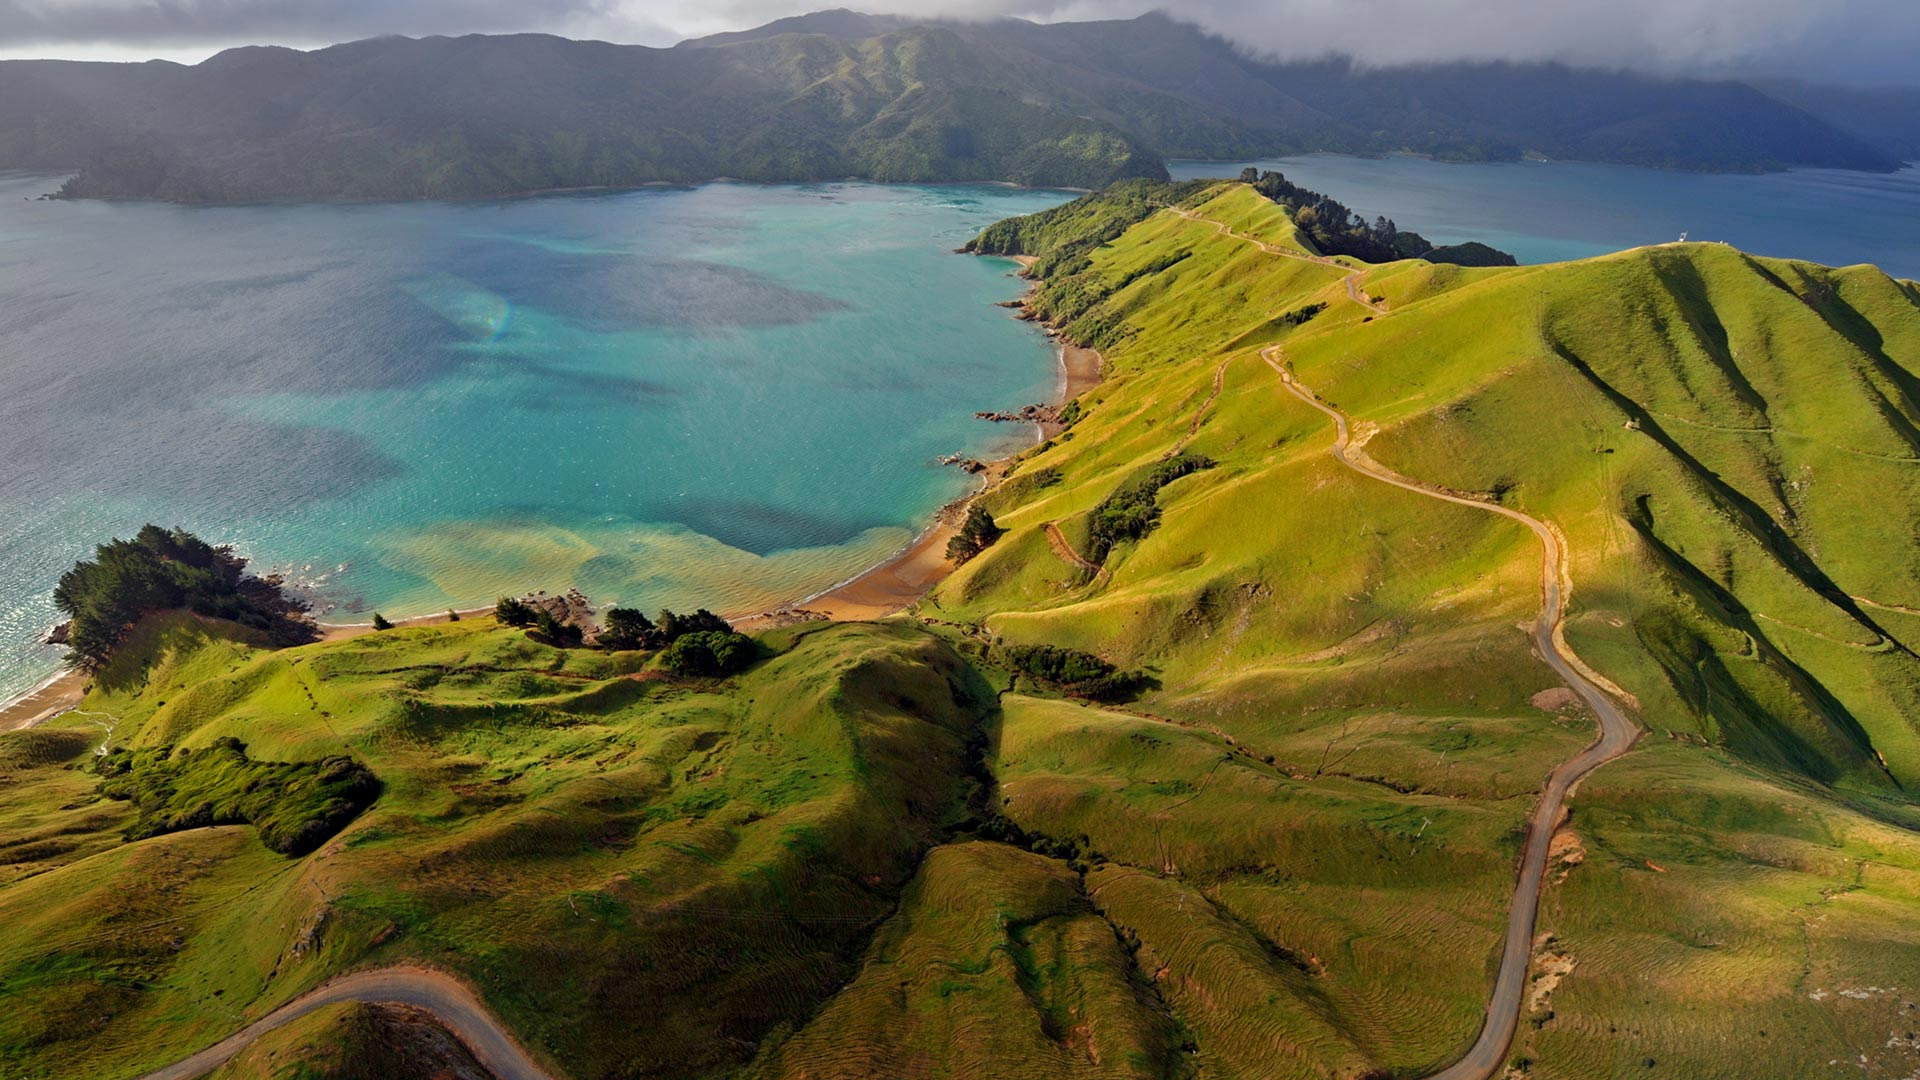 Aerial view of Marlborough Sounds, New Zealand (© Mathias Ortmann/Getty Images)(Bing United States)